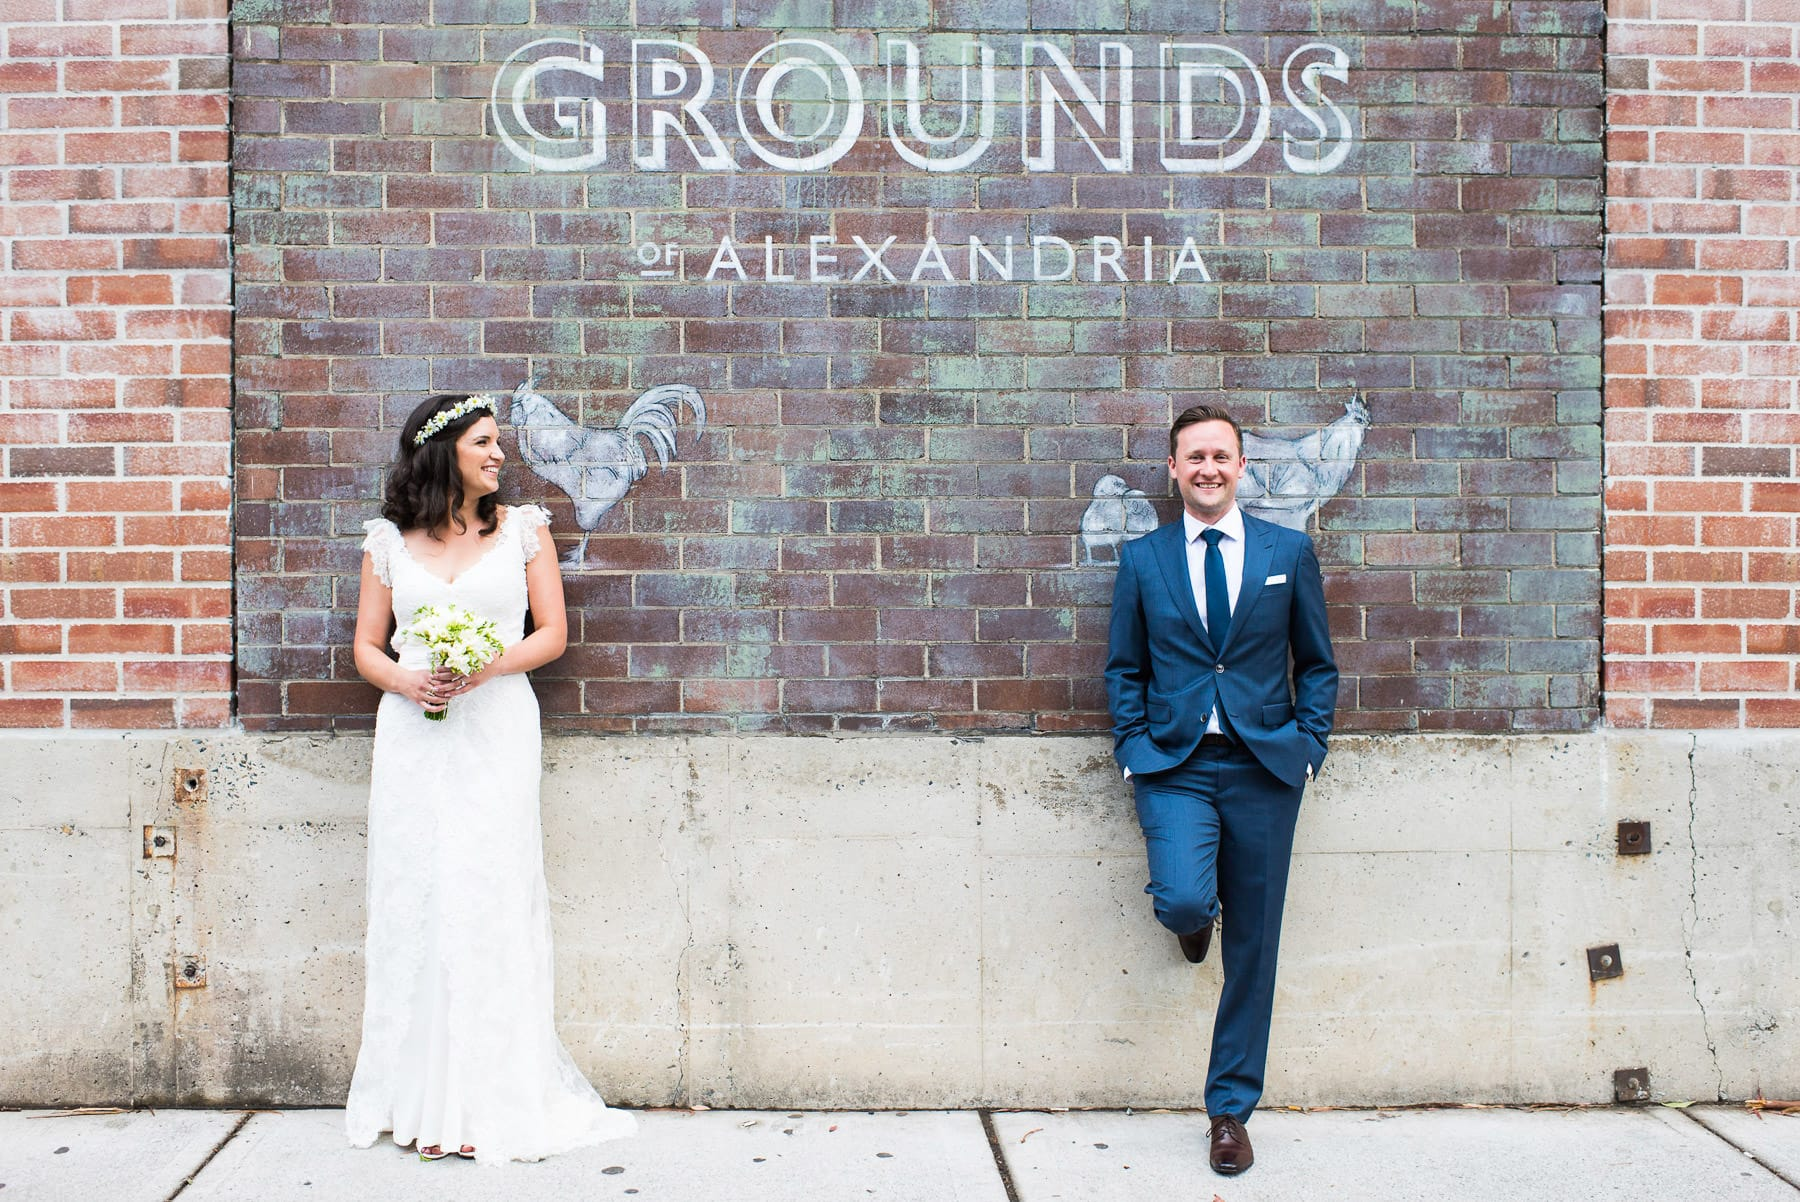 Grounds of Alexandria Wedding